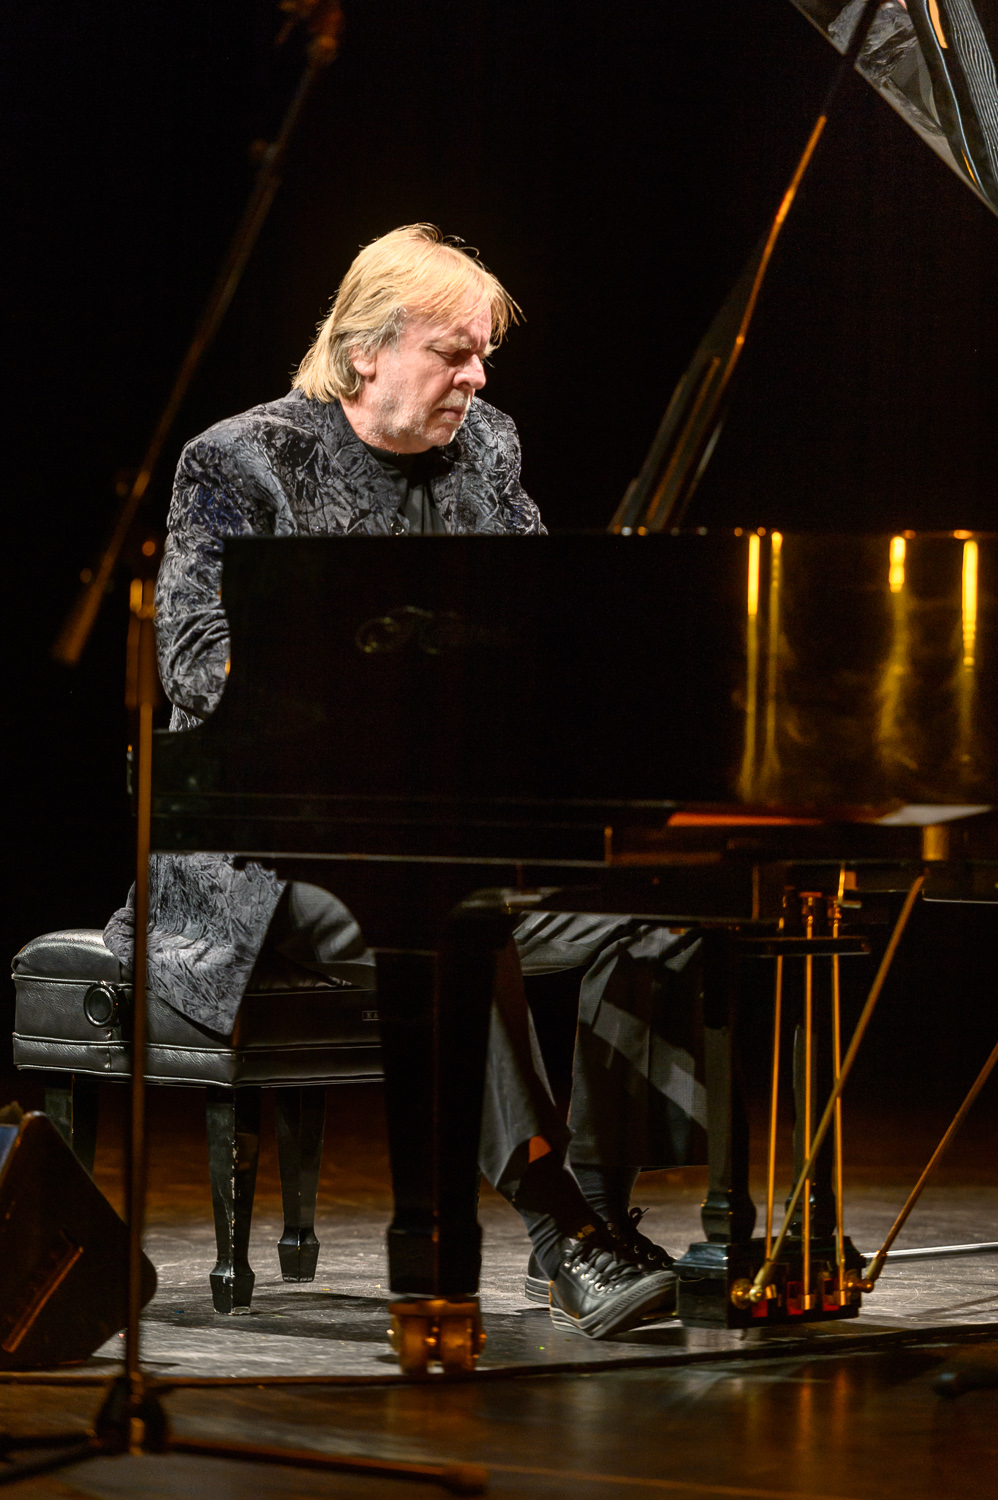 Rick Wakeman_October 07, 2012_045.jpg